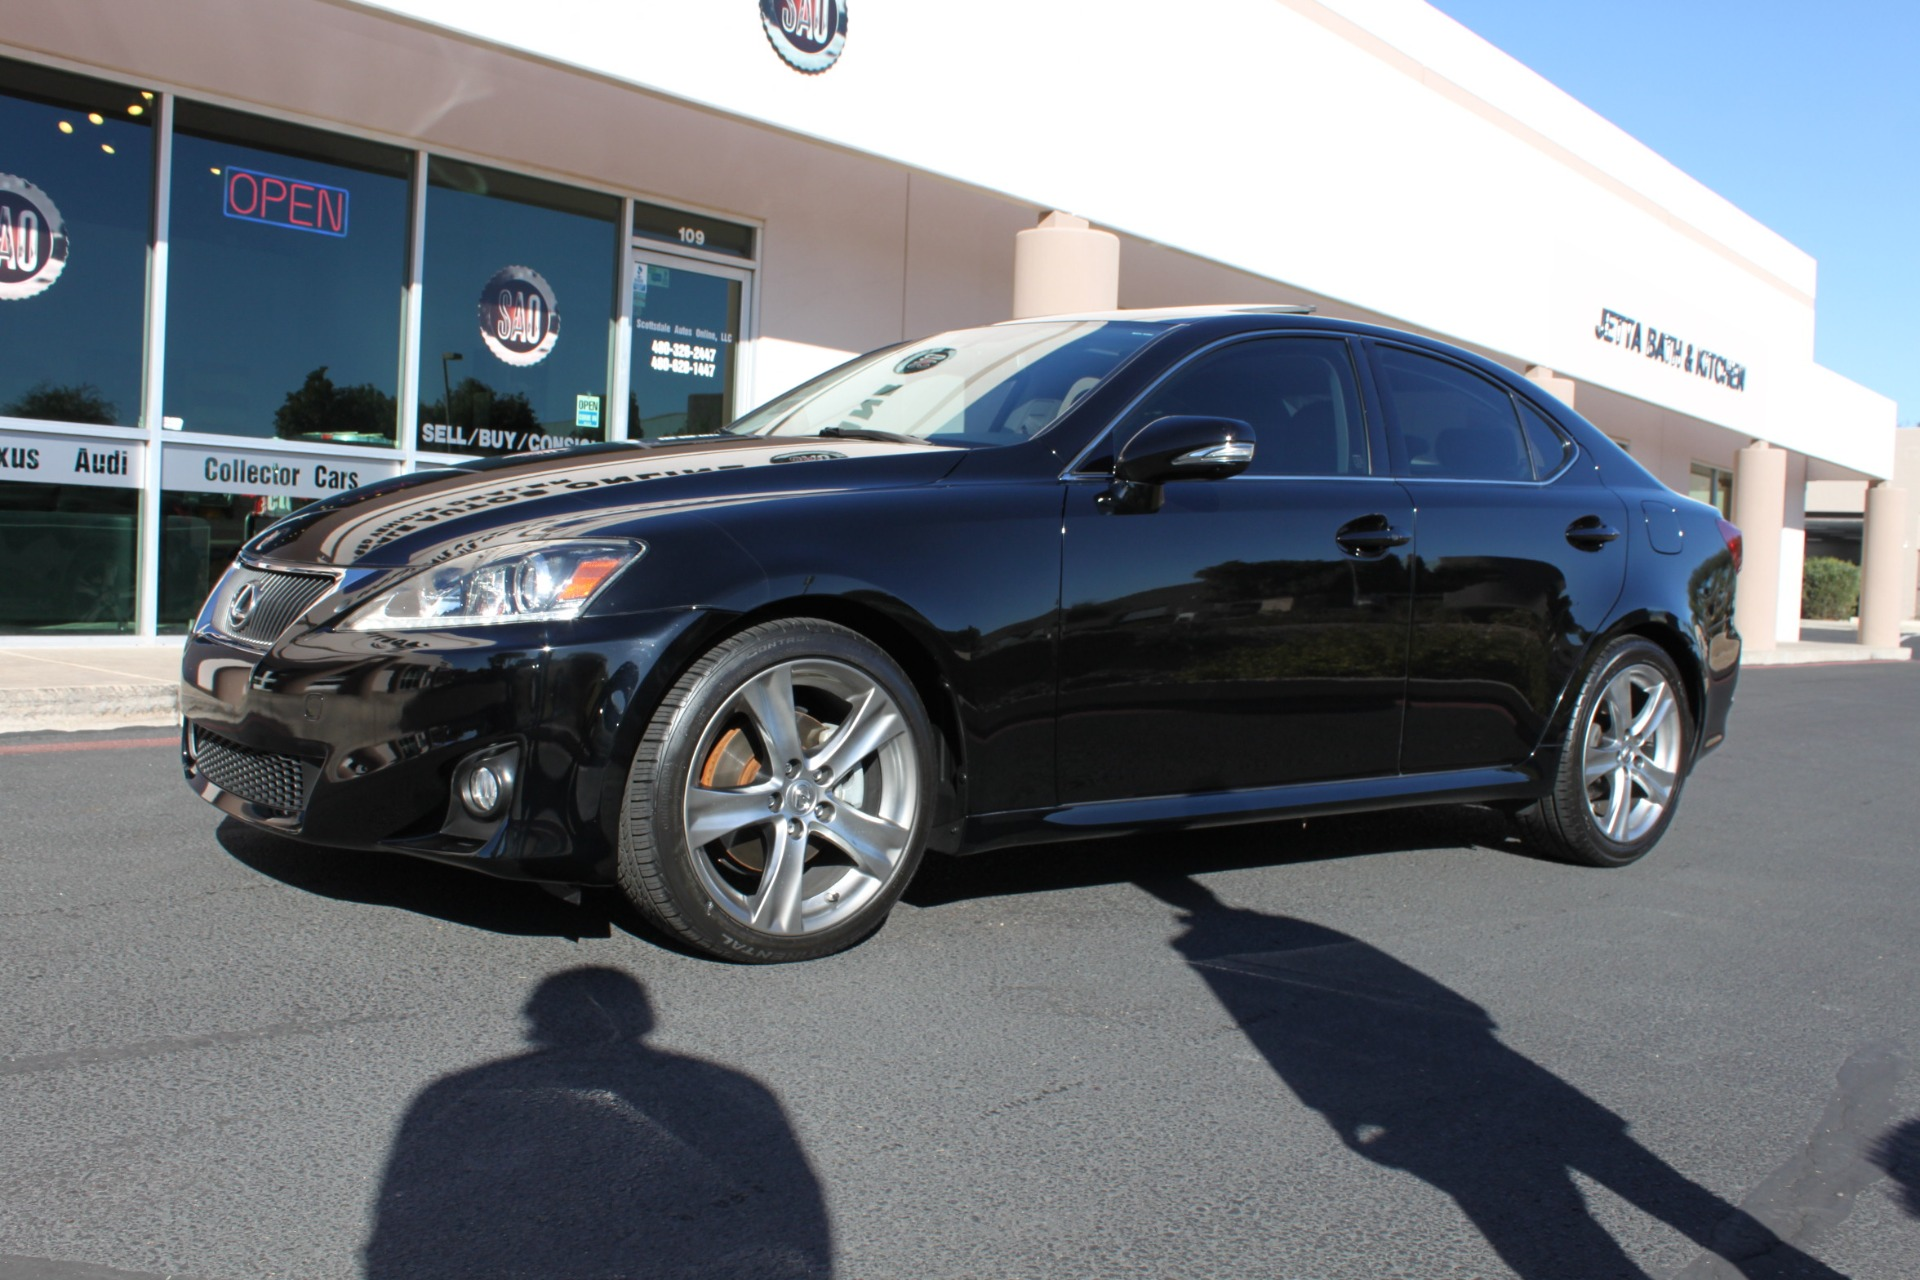 Used-2012-Lexus-IS-250-Dodge